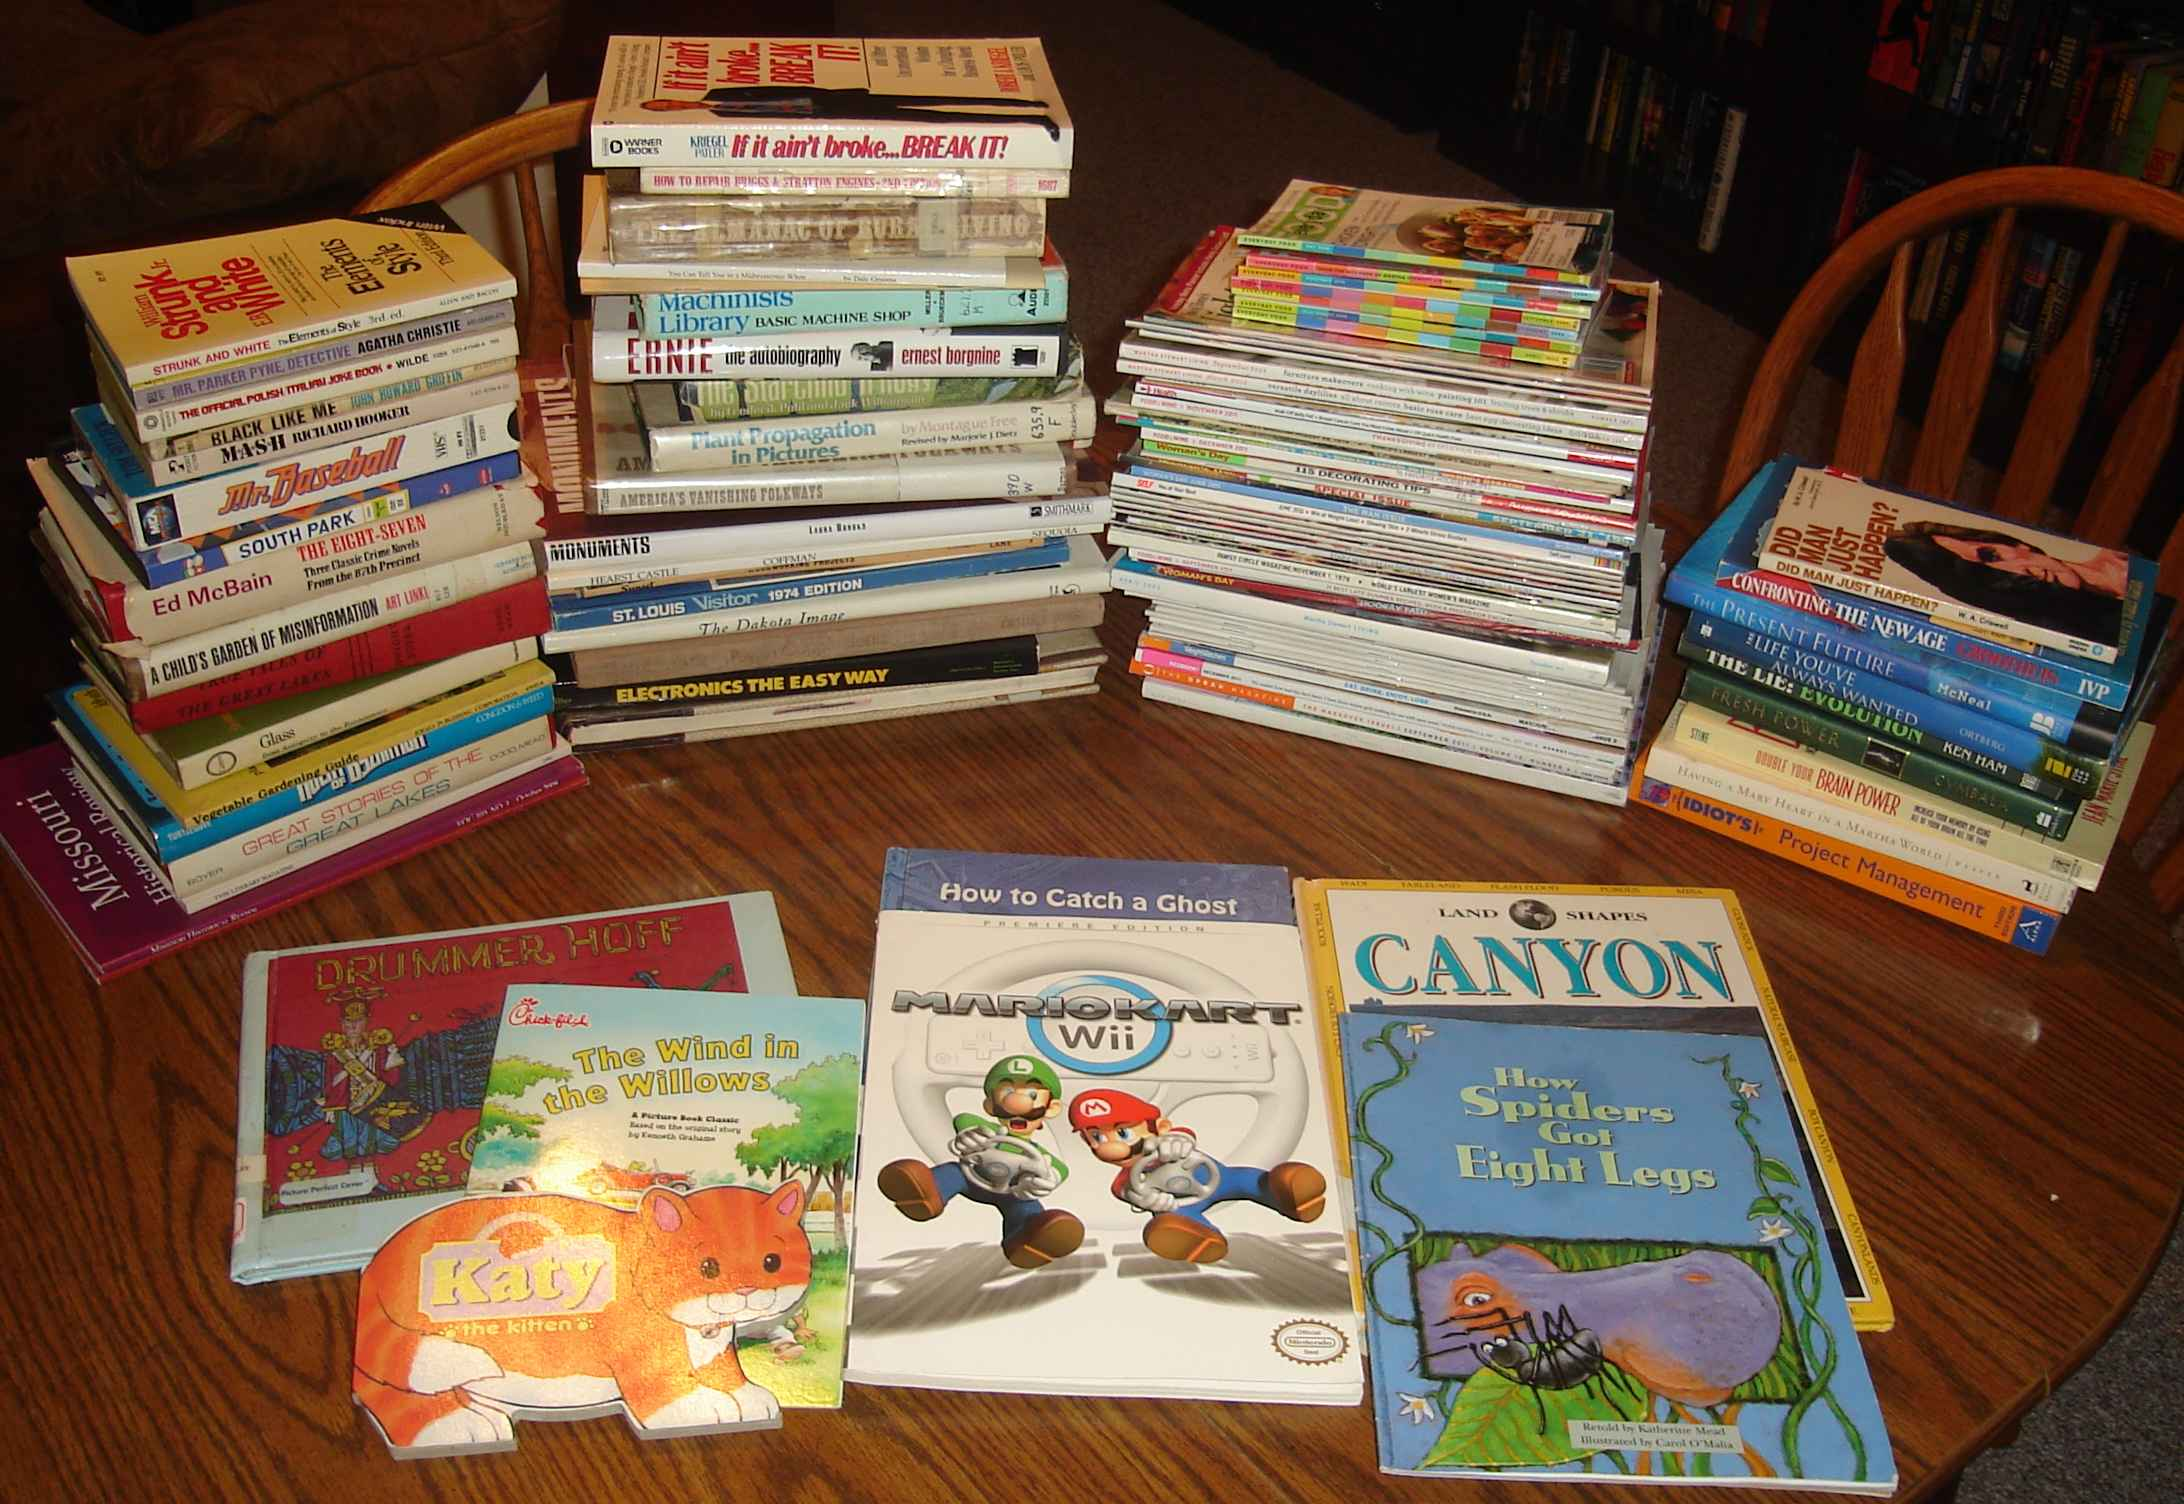 The proceeds from the Spring 2012 Friends of the Christian County Library book sale